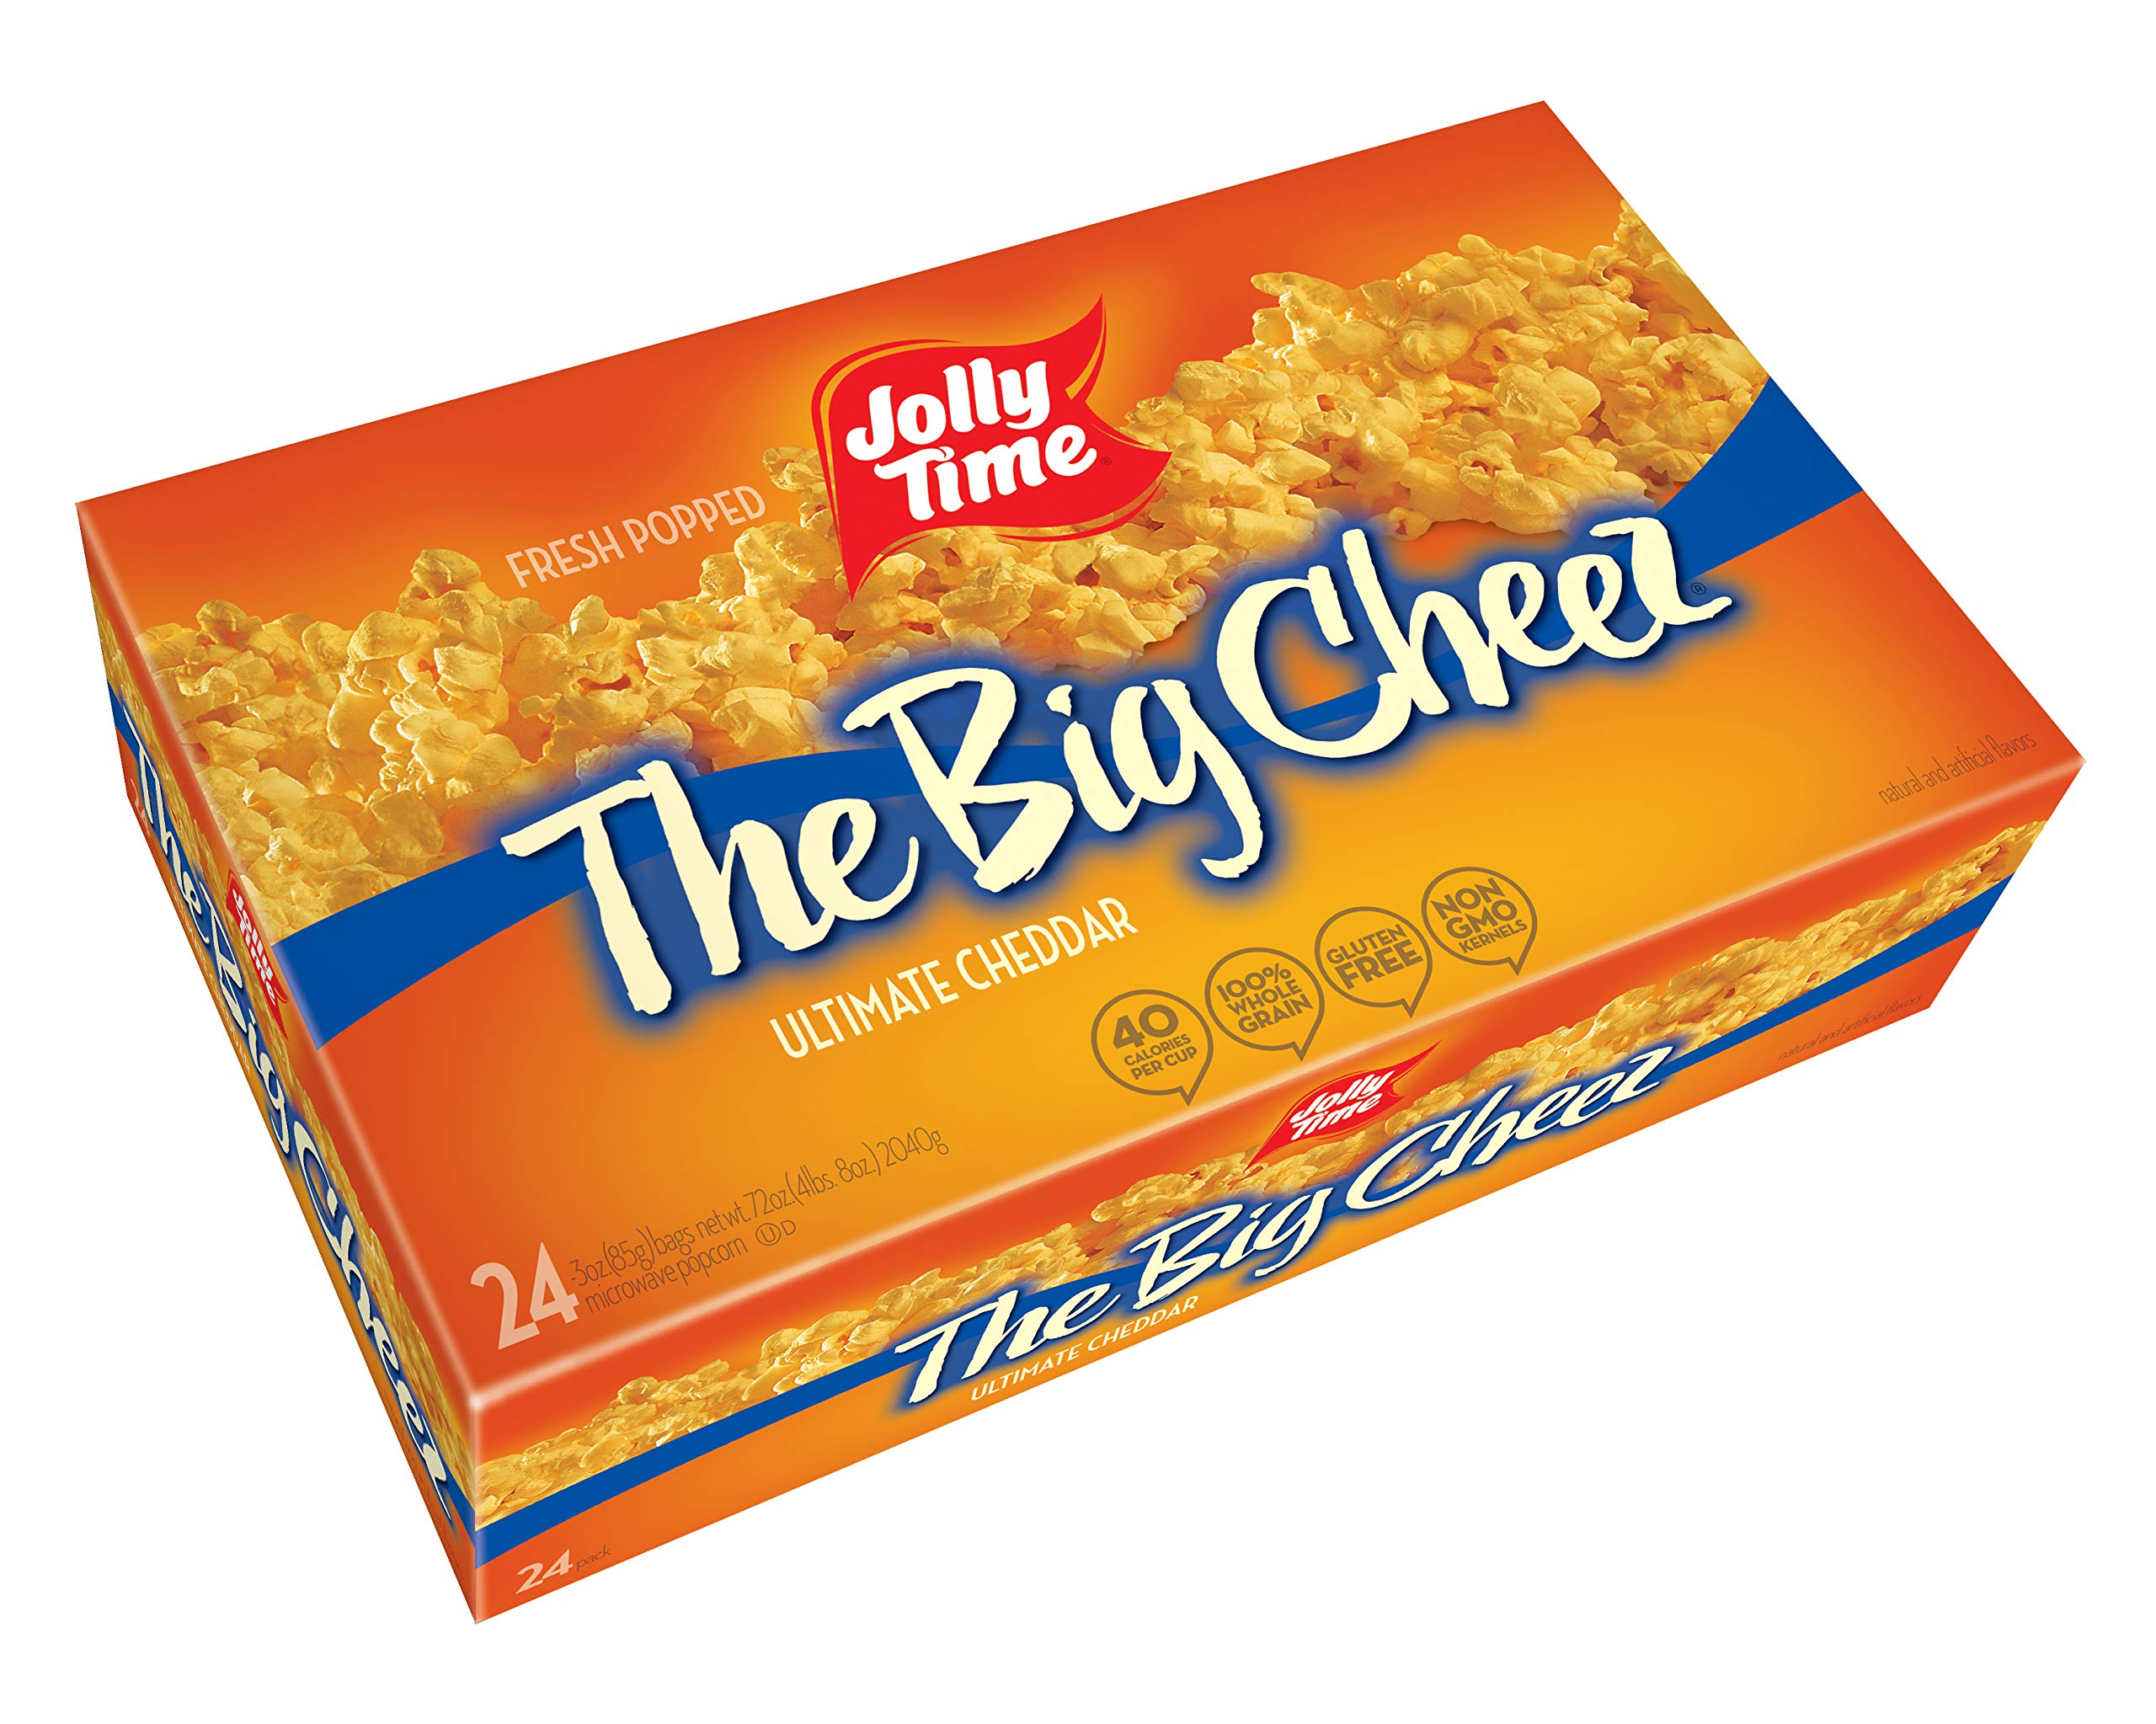 Jolly Time The Big Cheez Gourmet Cheddar Cheese Microwave Popcorn, Bulk 24-Count Box